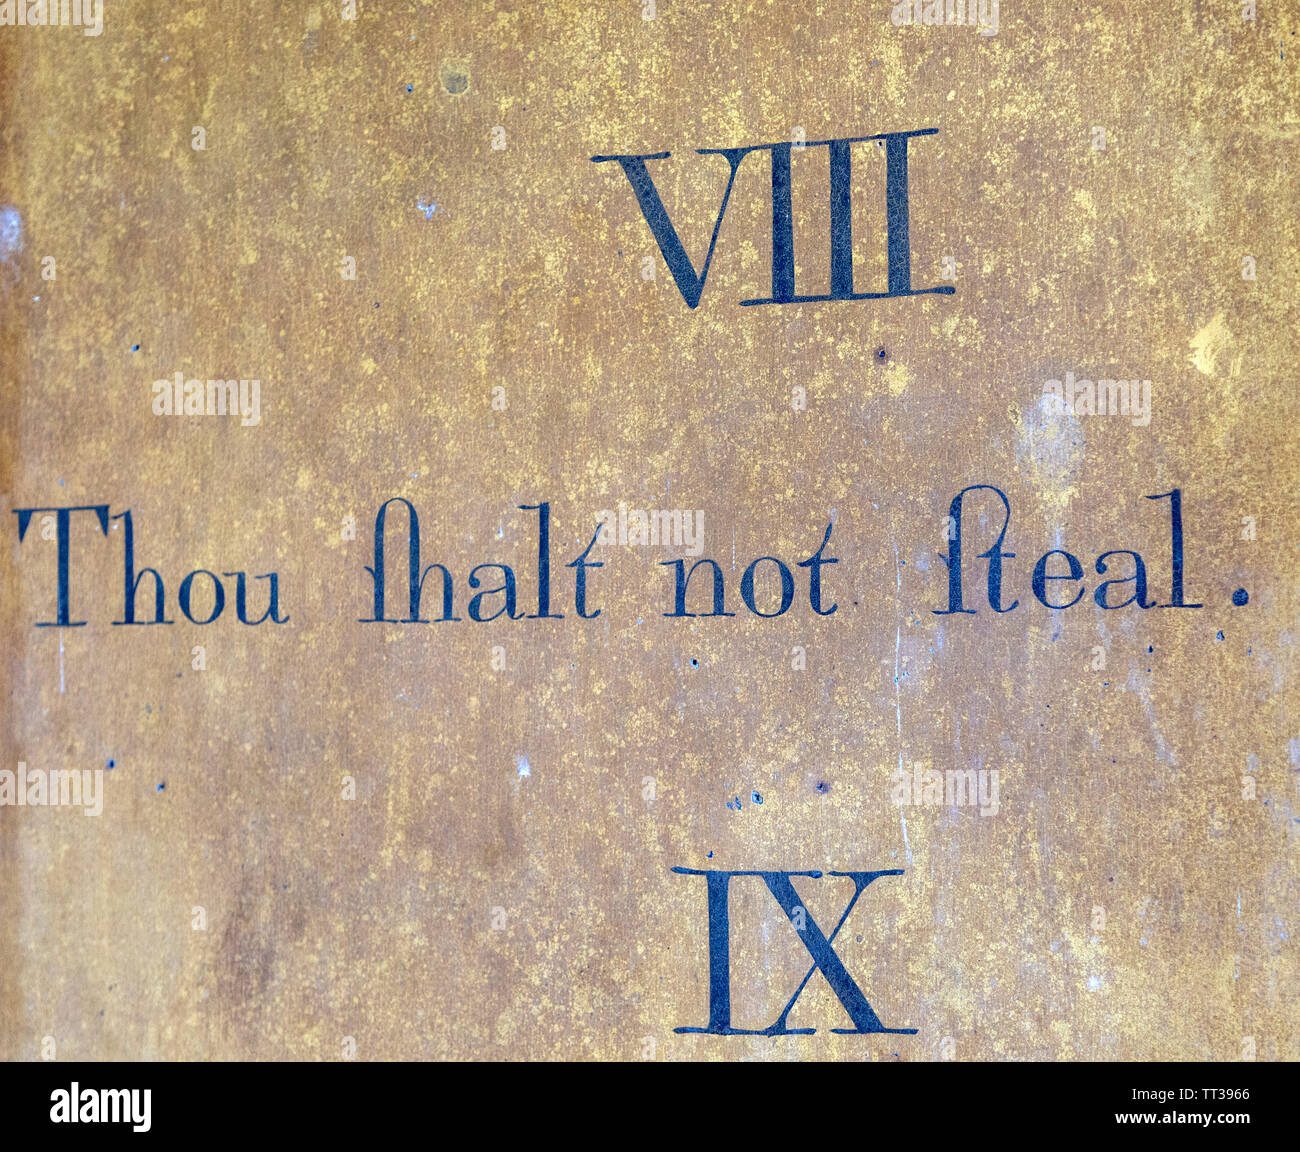 Historic interior of Saint John the Baptist church, Mildenhall, Wiltshire, England, UK 'Thou shalt not steal' commandment - Stock Image